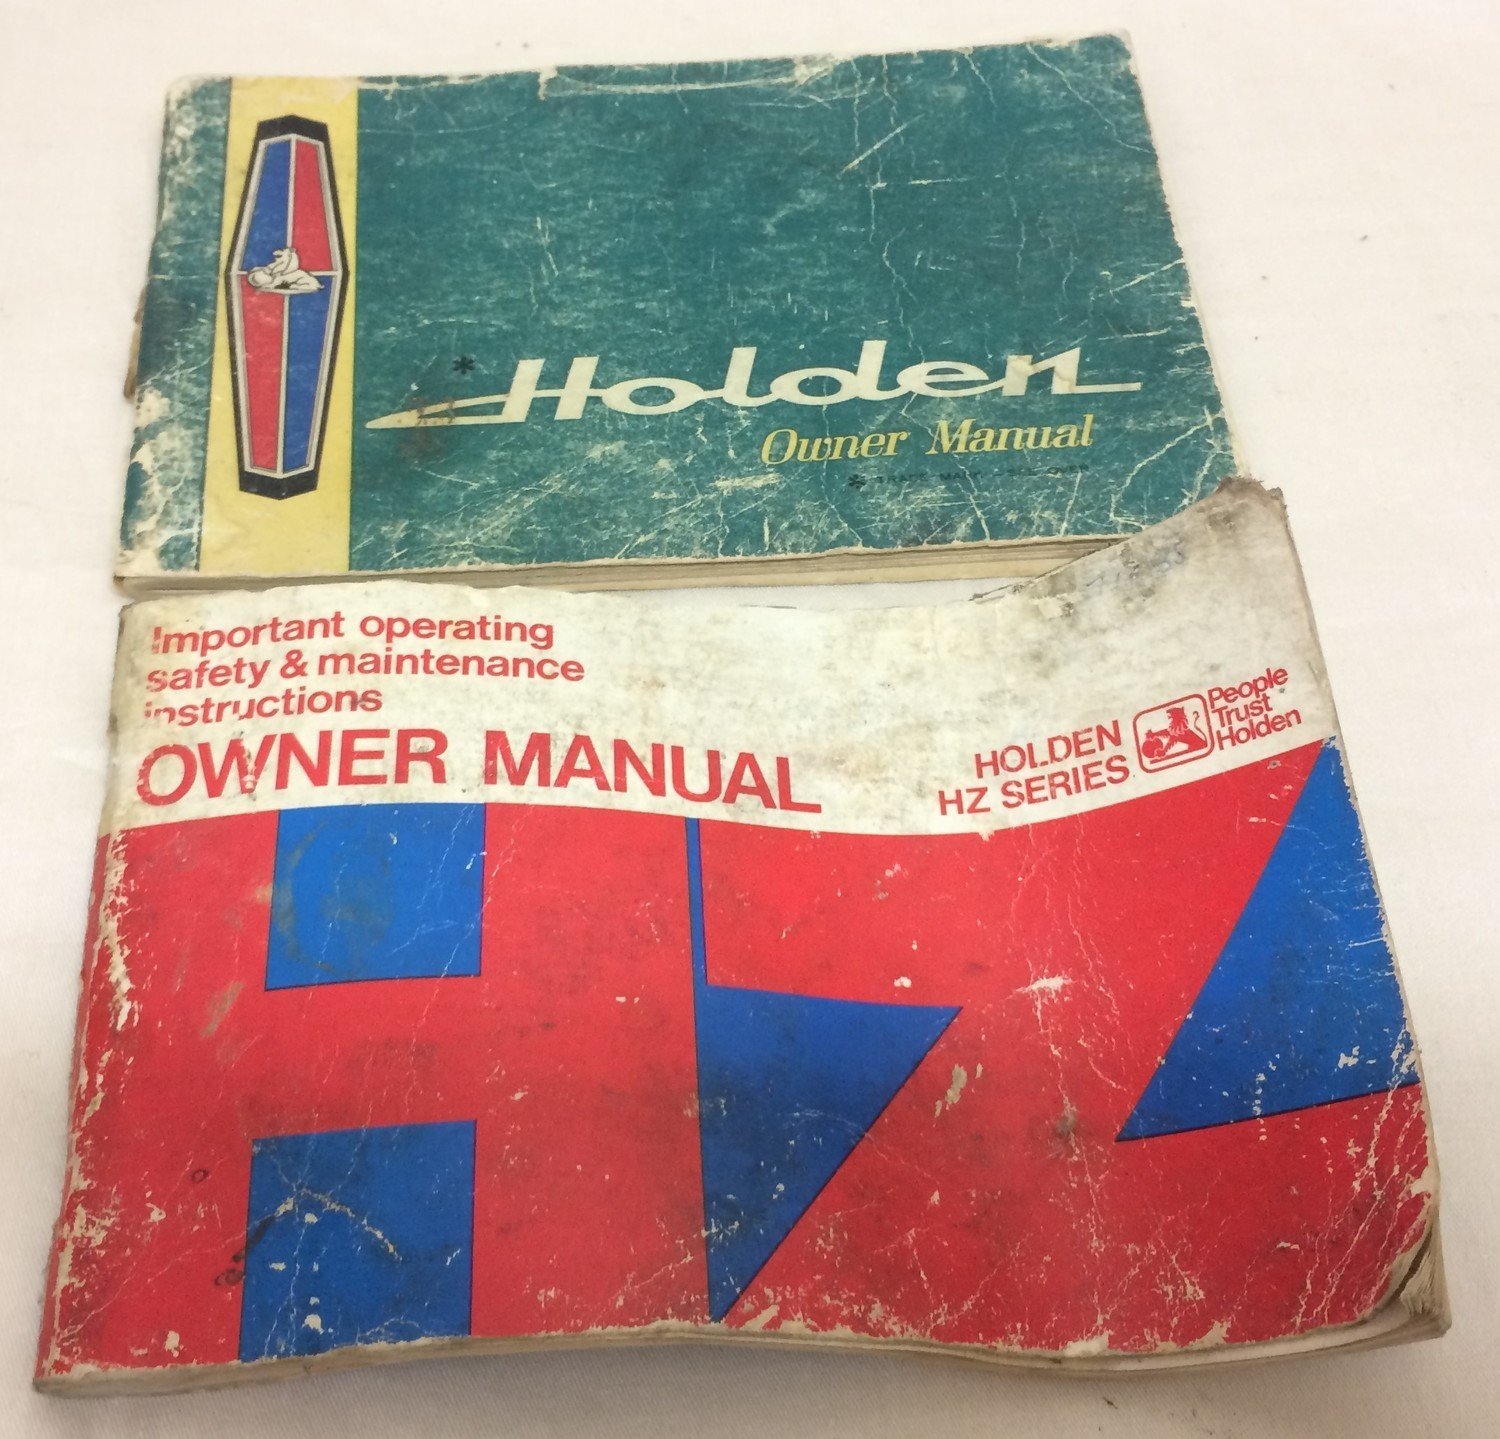 Pair of Holden Manuals #400-17